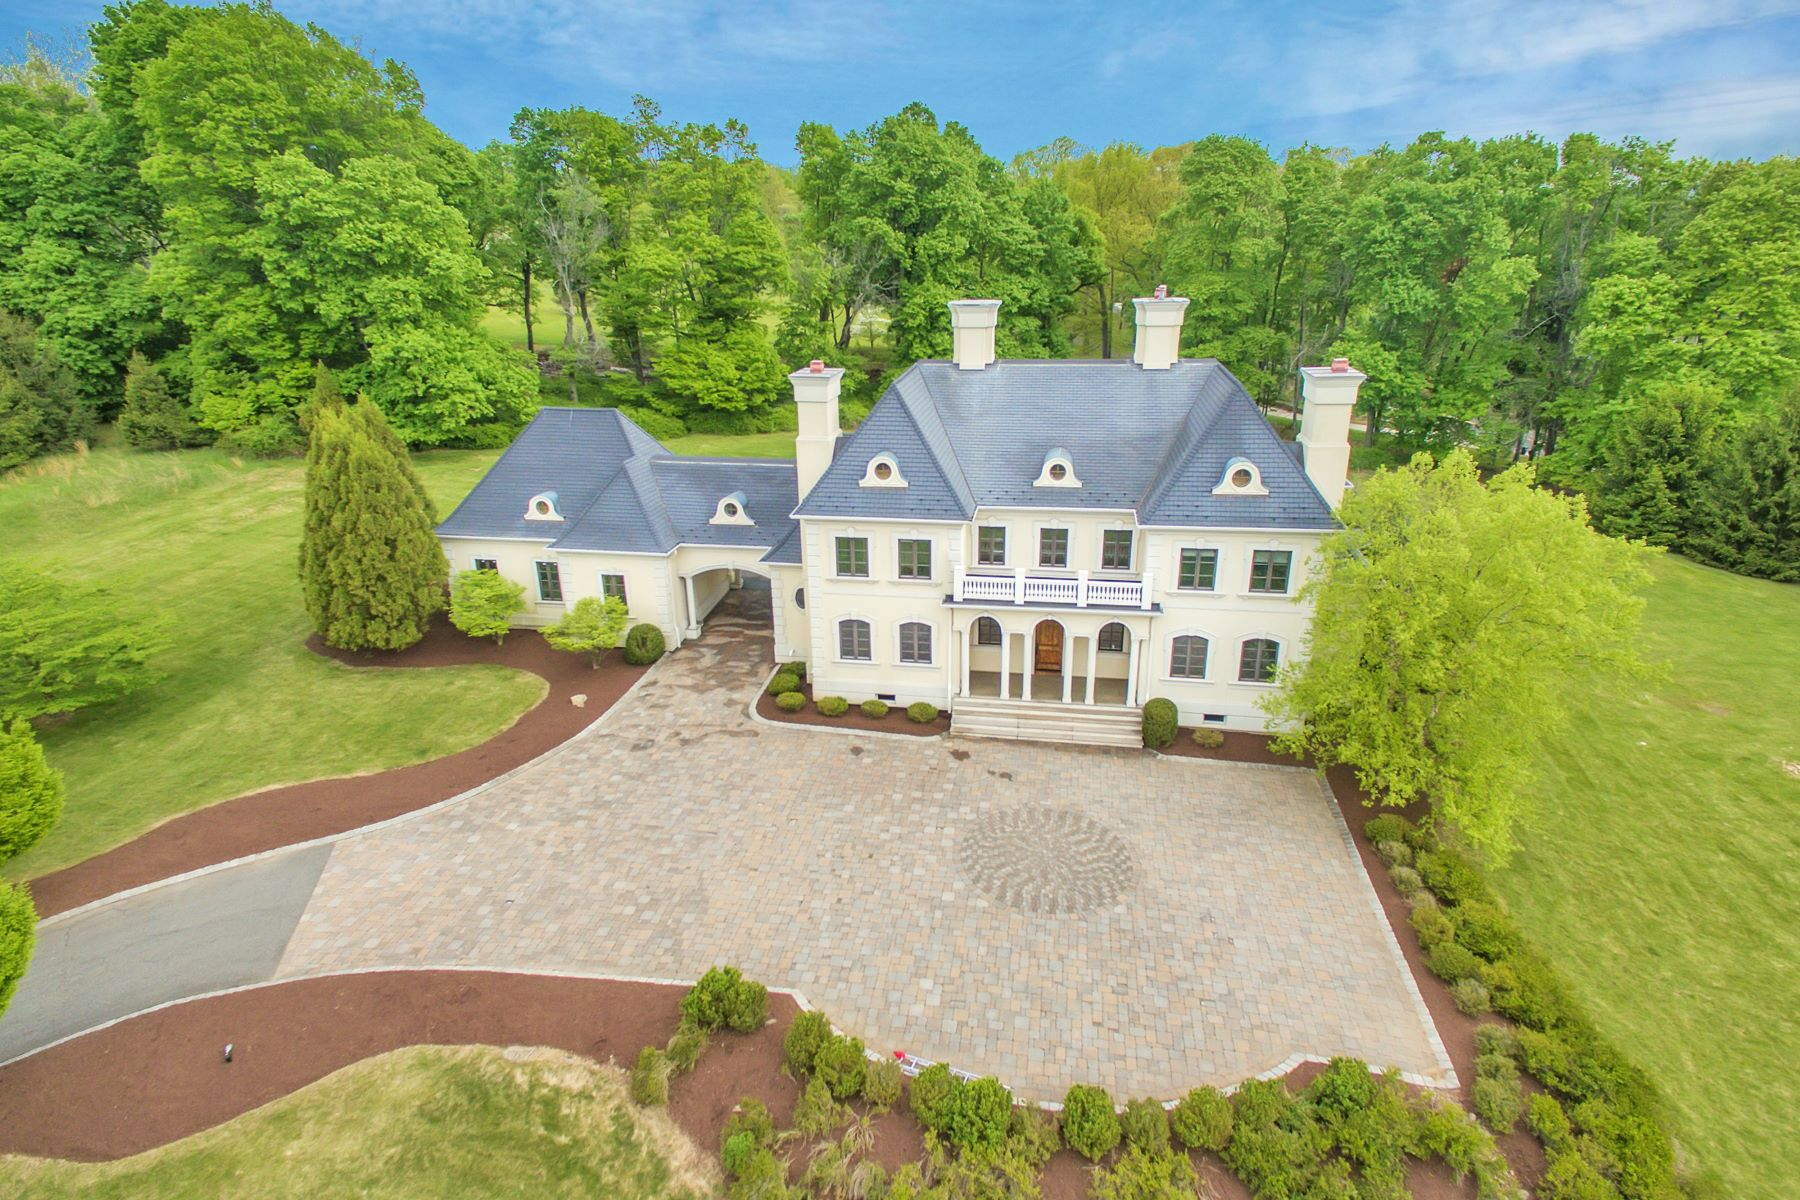 Single Family Home for Sale at Palatial Residence 1 Crownview Lane Bernardsville, New Jersey, 07924 United States